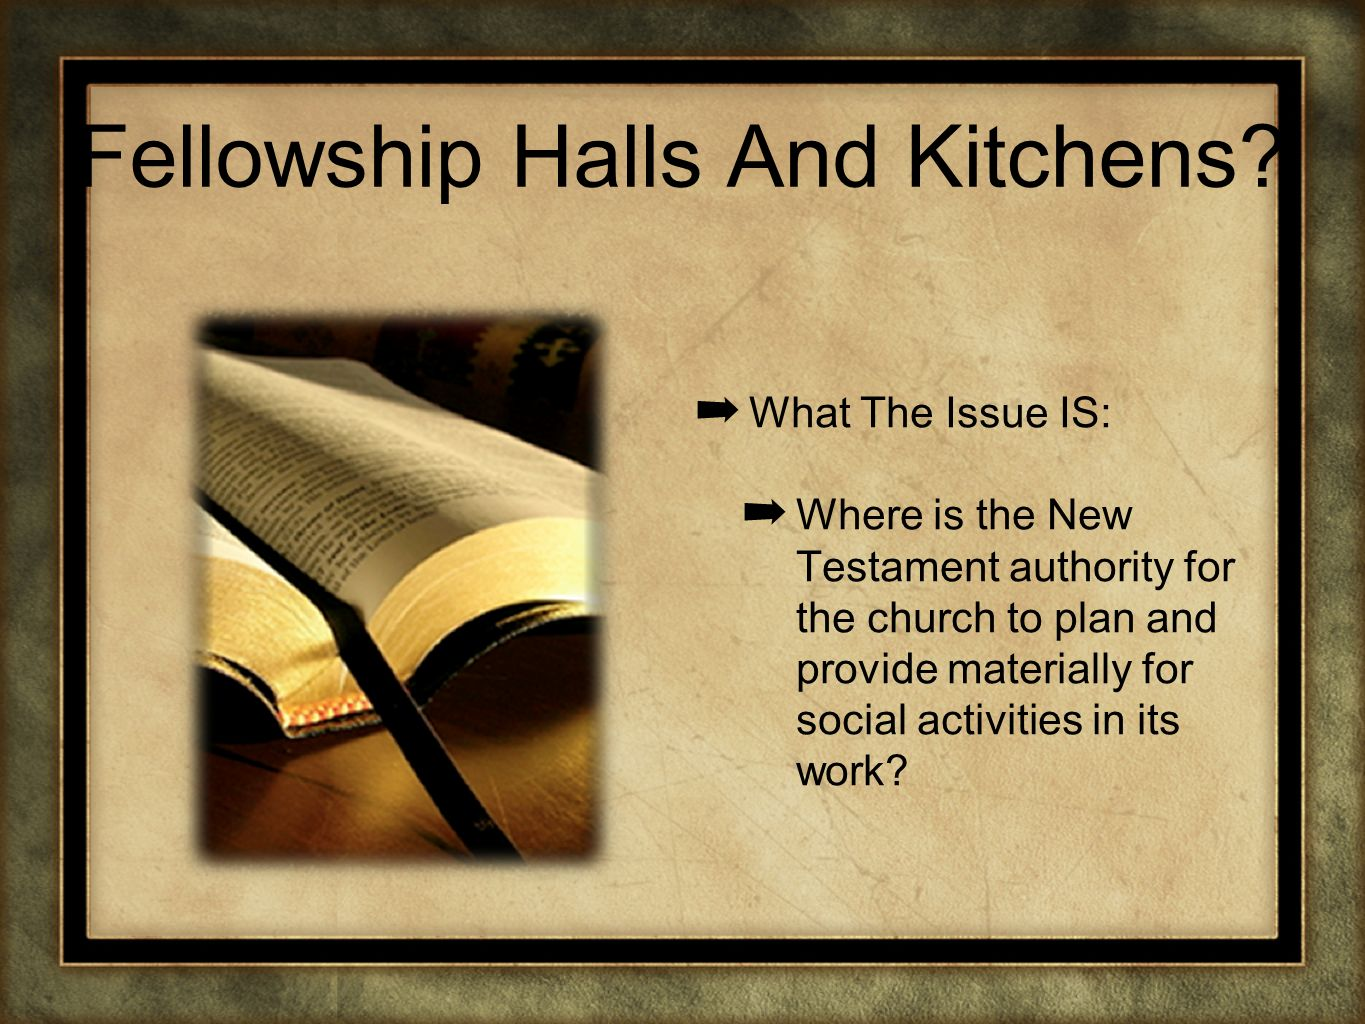 Fellowship Halls And Kitchens? What The Issue IS: Where is the New Testament authority for the church to plan and provide materially for social activi